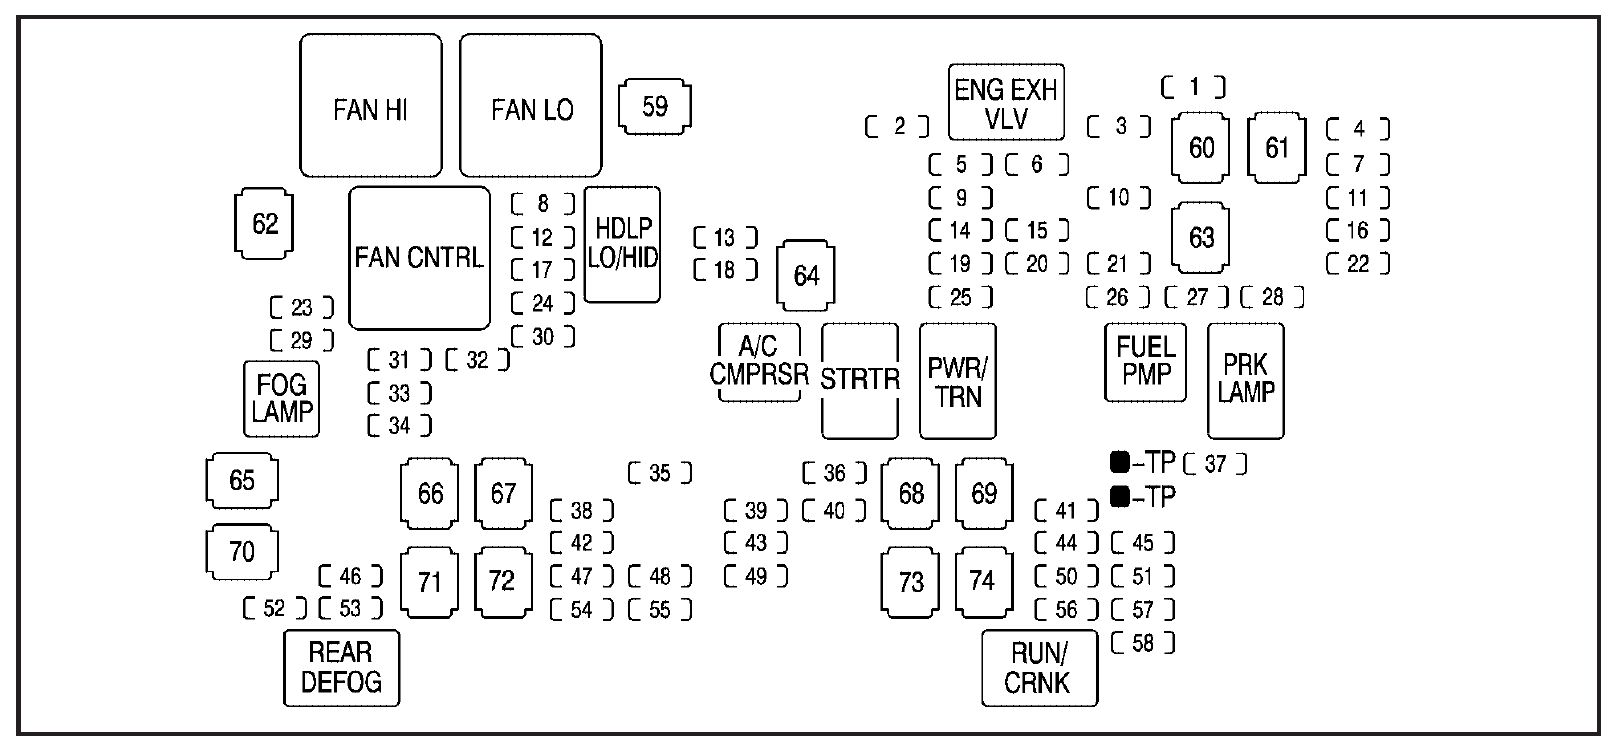 2007 Gmc Sierra Fuse Box Diagram : 32 Wiring Diagram